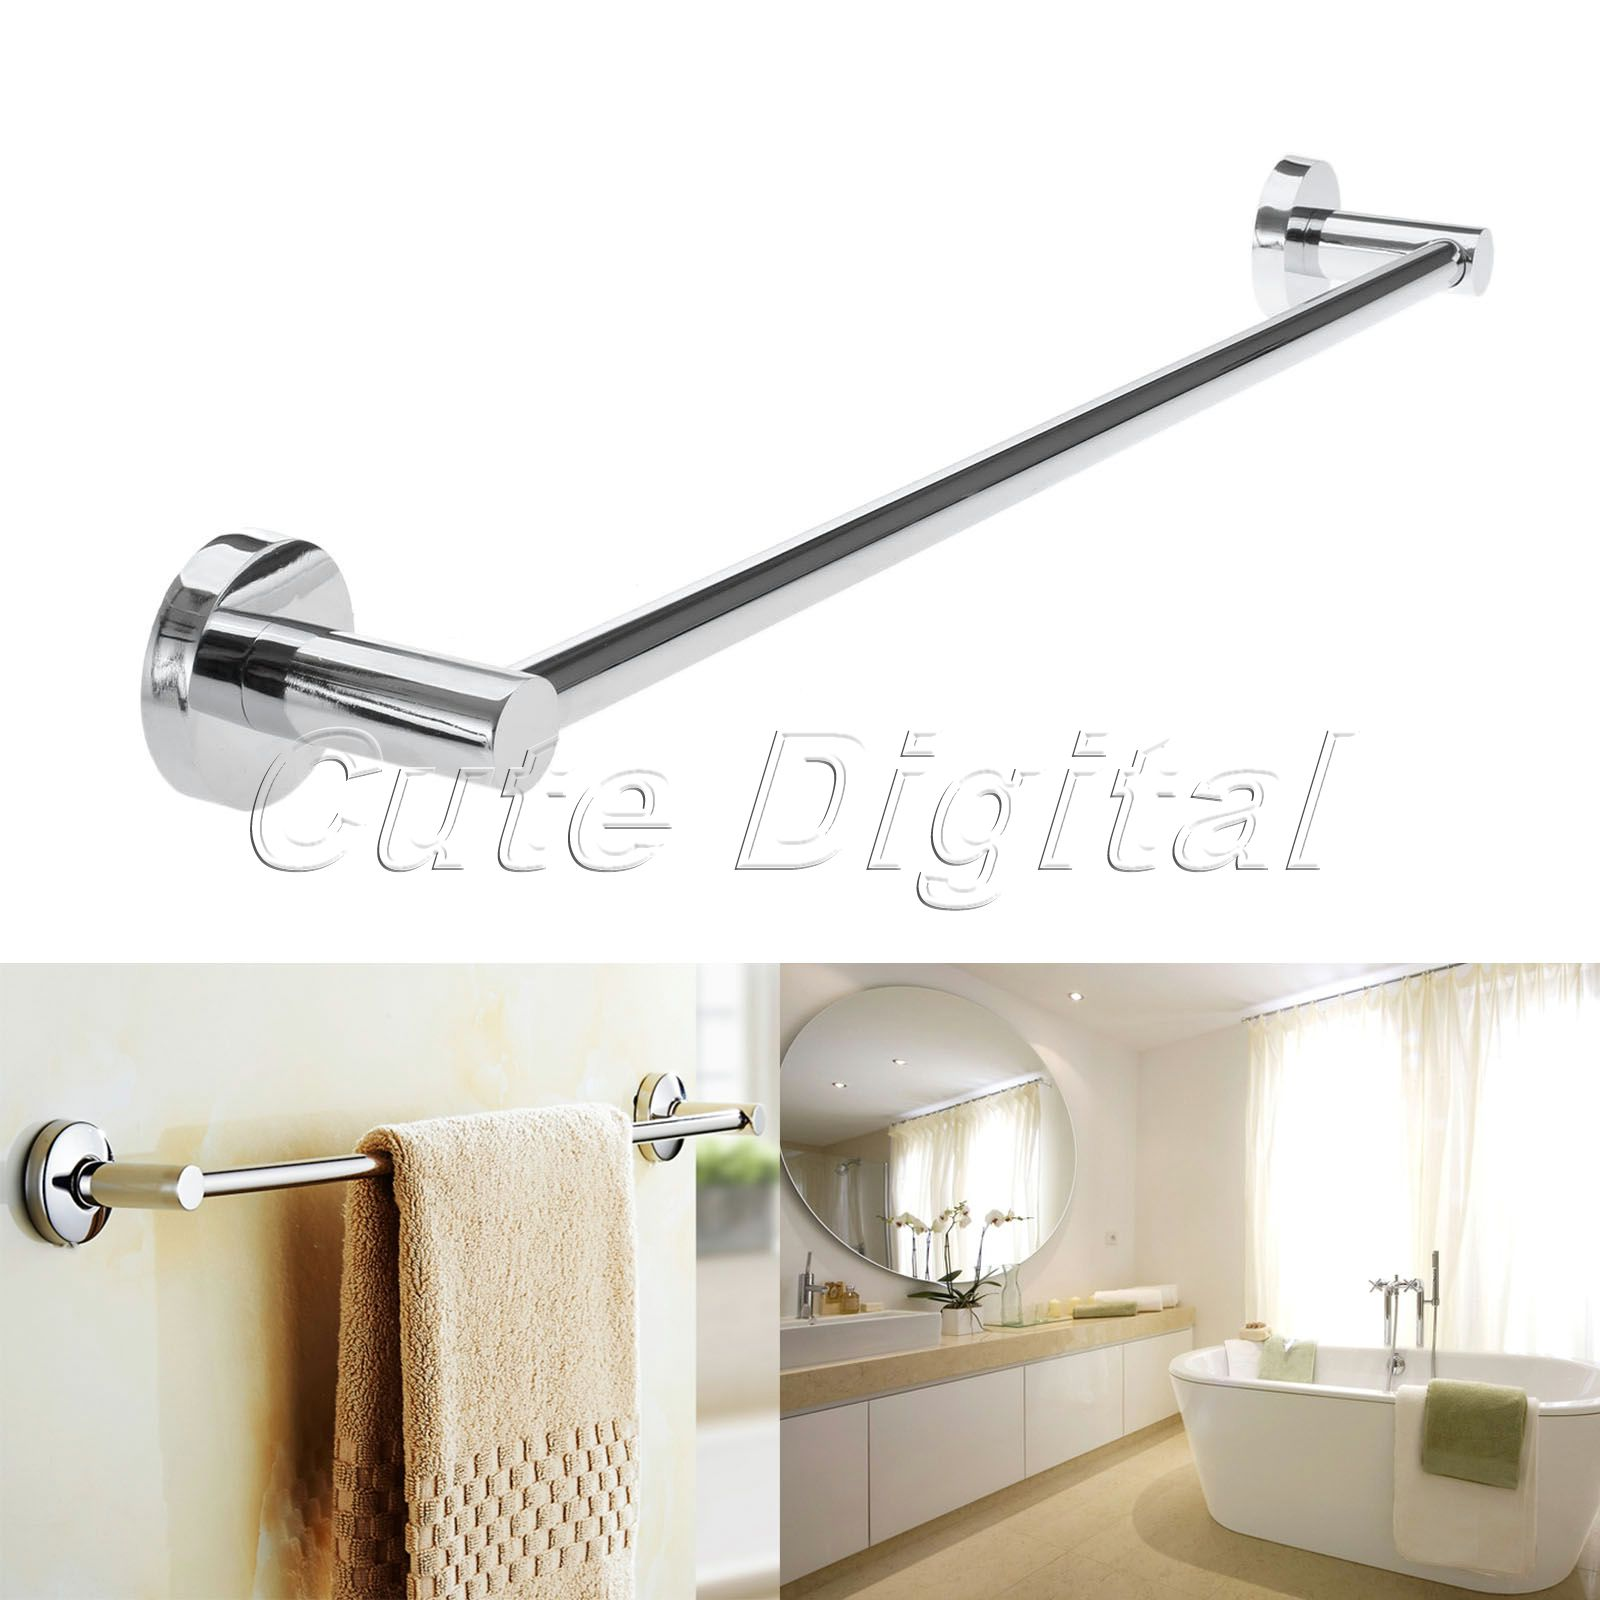 Where To Put Towel Bars In Bathroom: Aliexpress.com : Buy Stainless Steel Towel Rack Wall